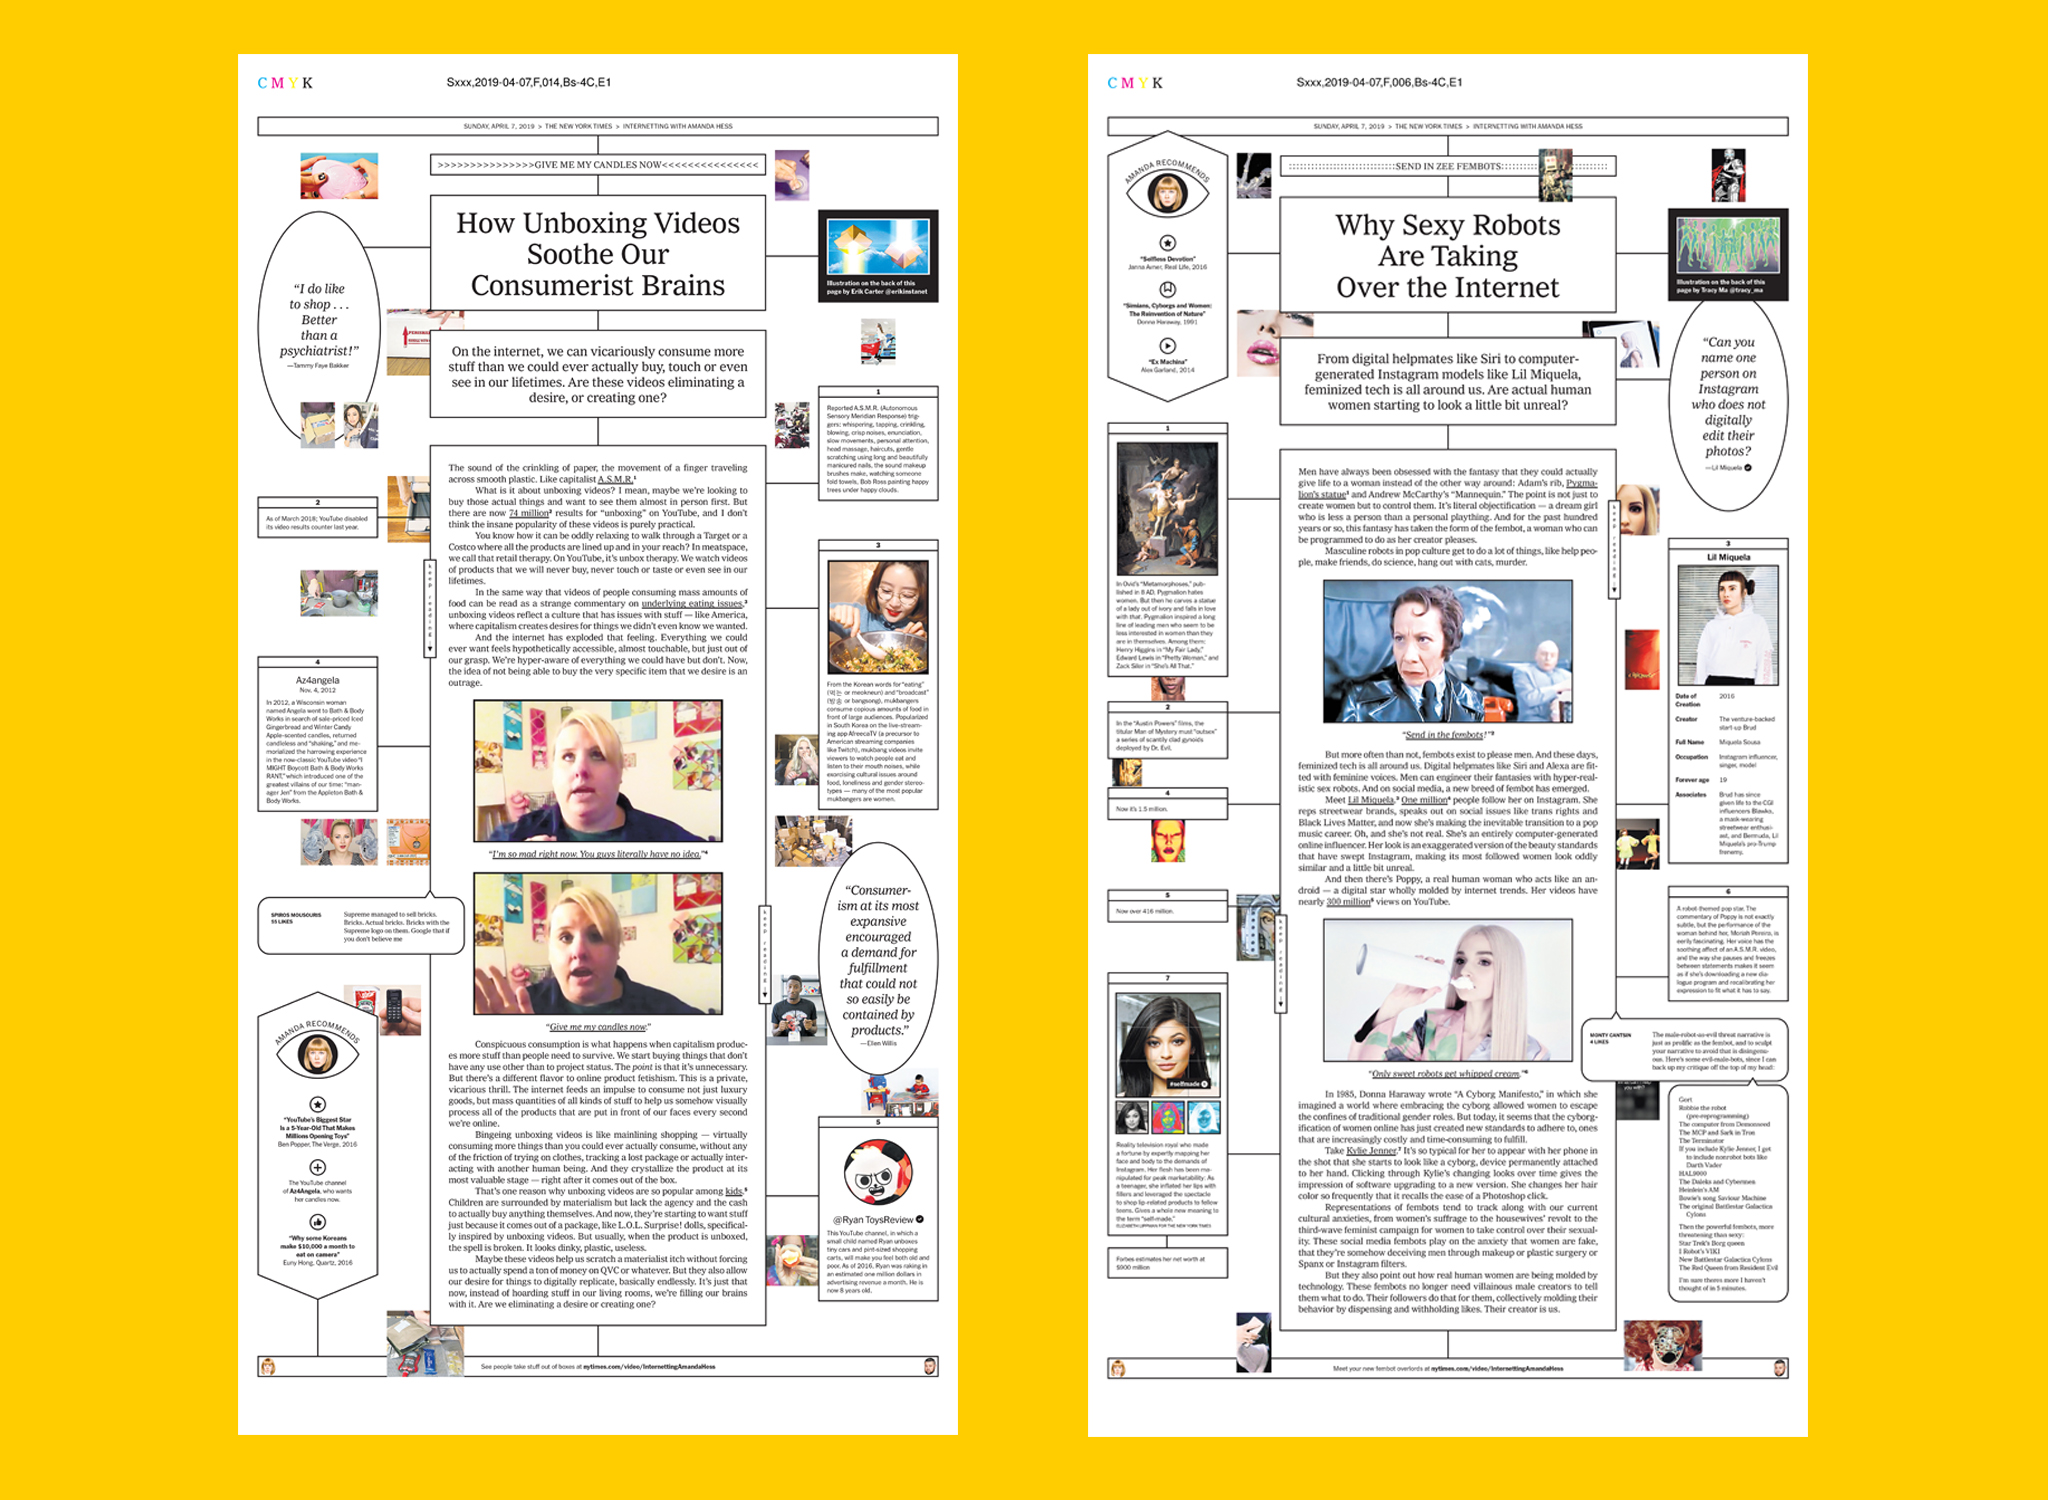 The New York Times, Internetting With Amanda Hess - co-designed with Andrew Sondern